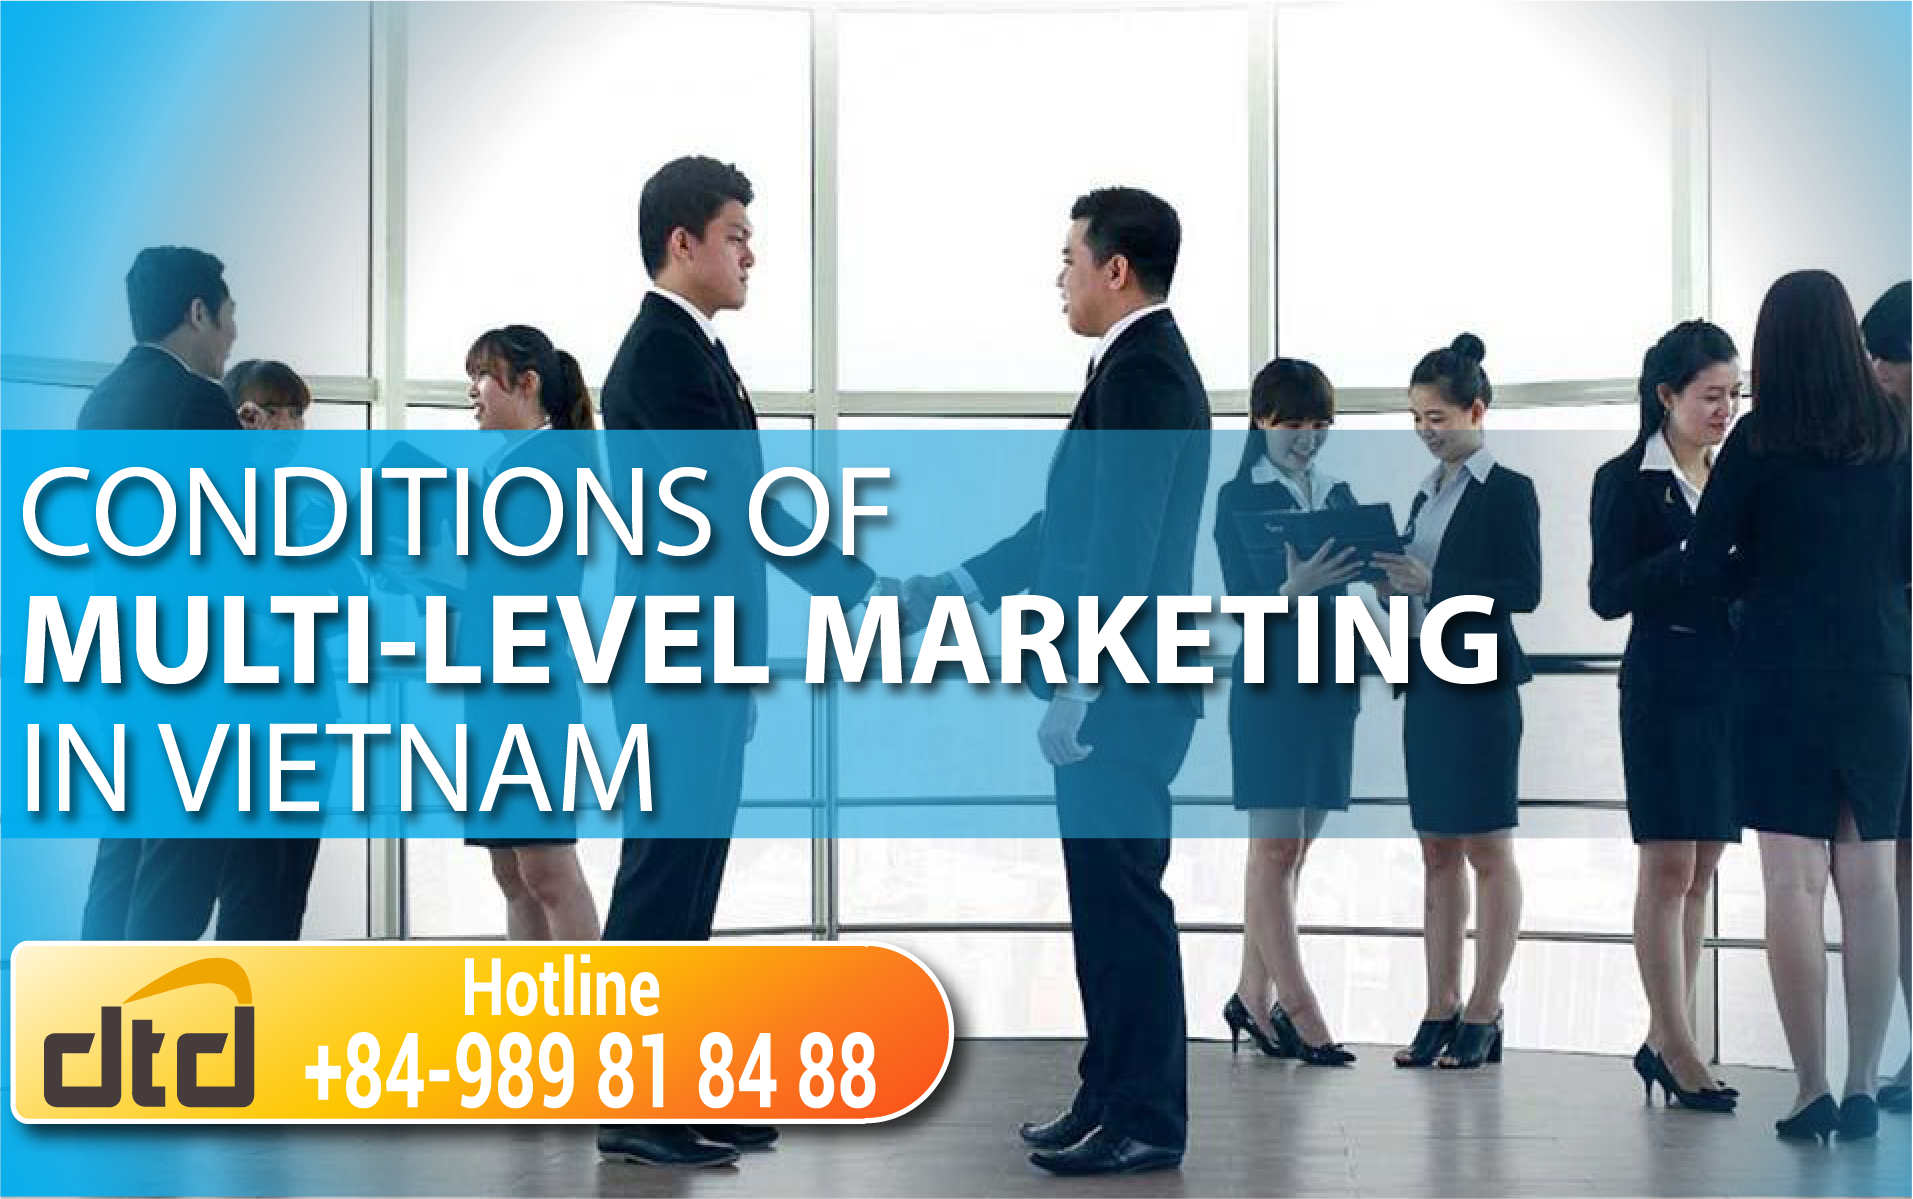 CONDITIONS OF MULTI-LEVEL MARKETING IN VIETNAM